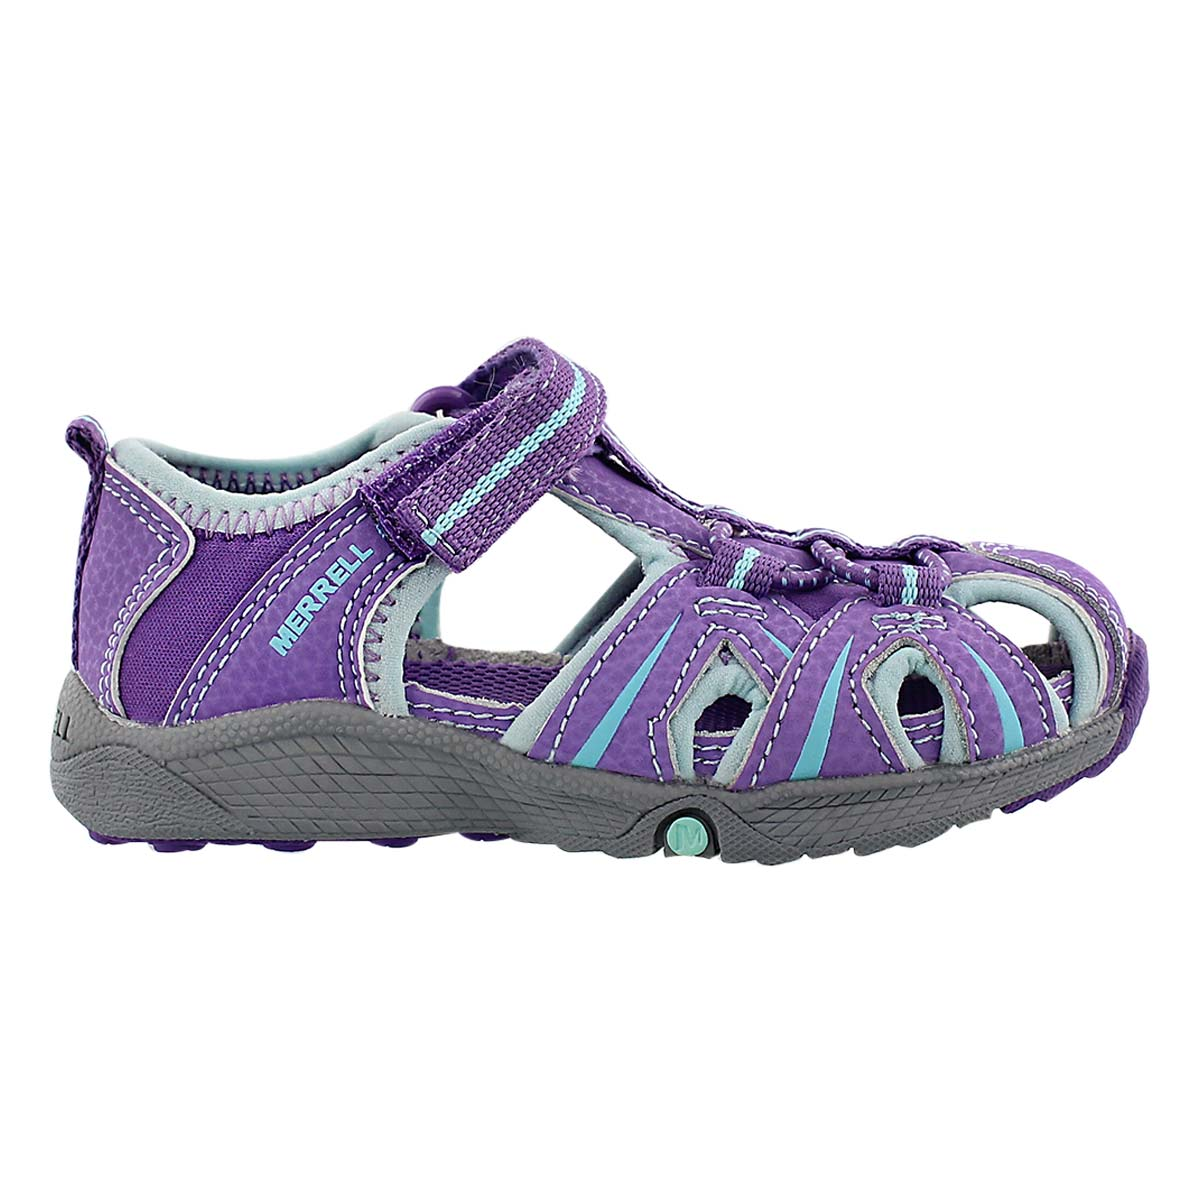 Inf Hydro Junior purple fisherman sandal